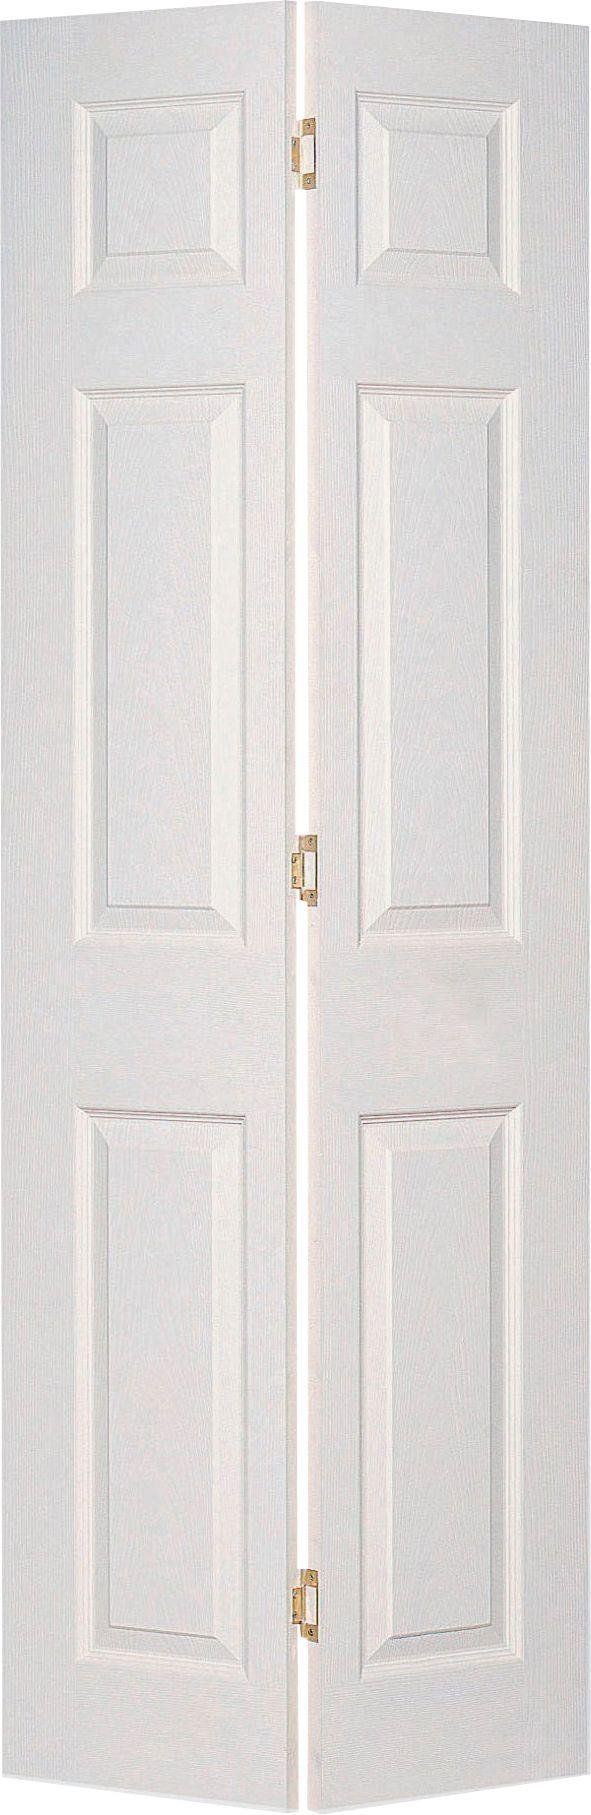 jeld-wen-6-panel-bi-fold-interior-door-1981-x-762mm